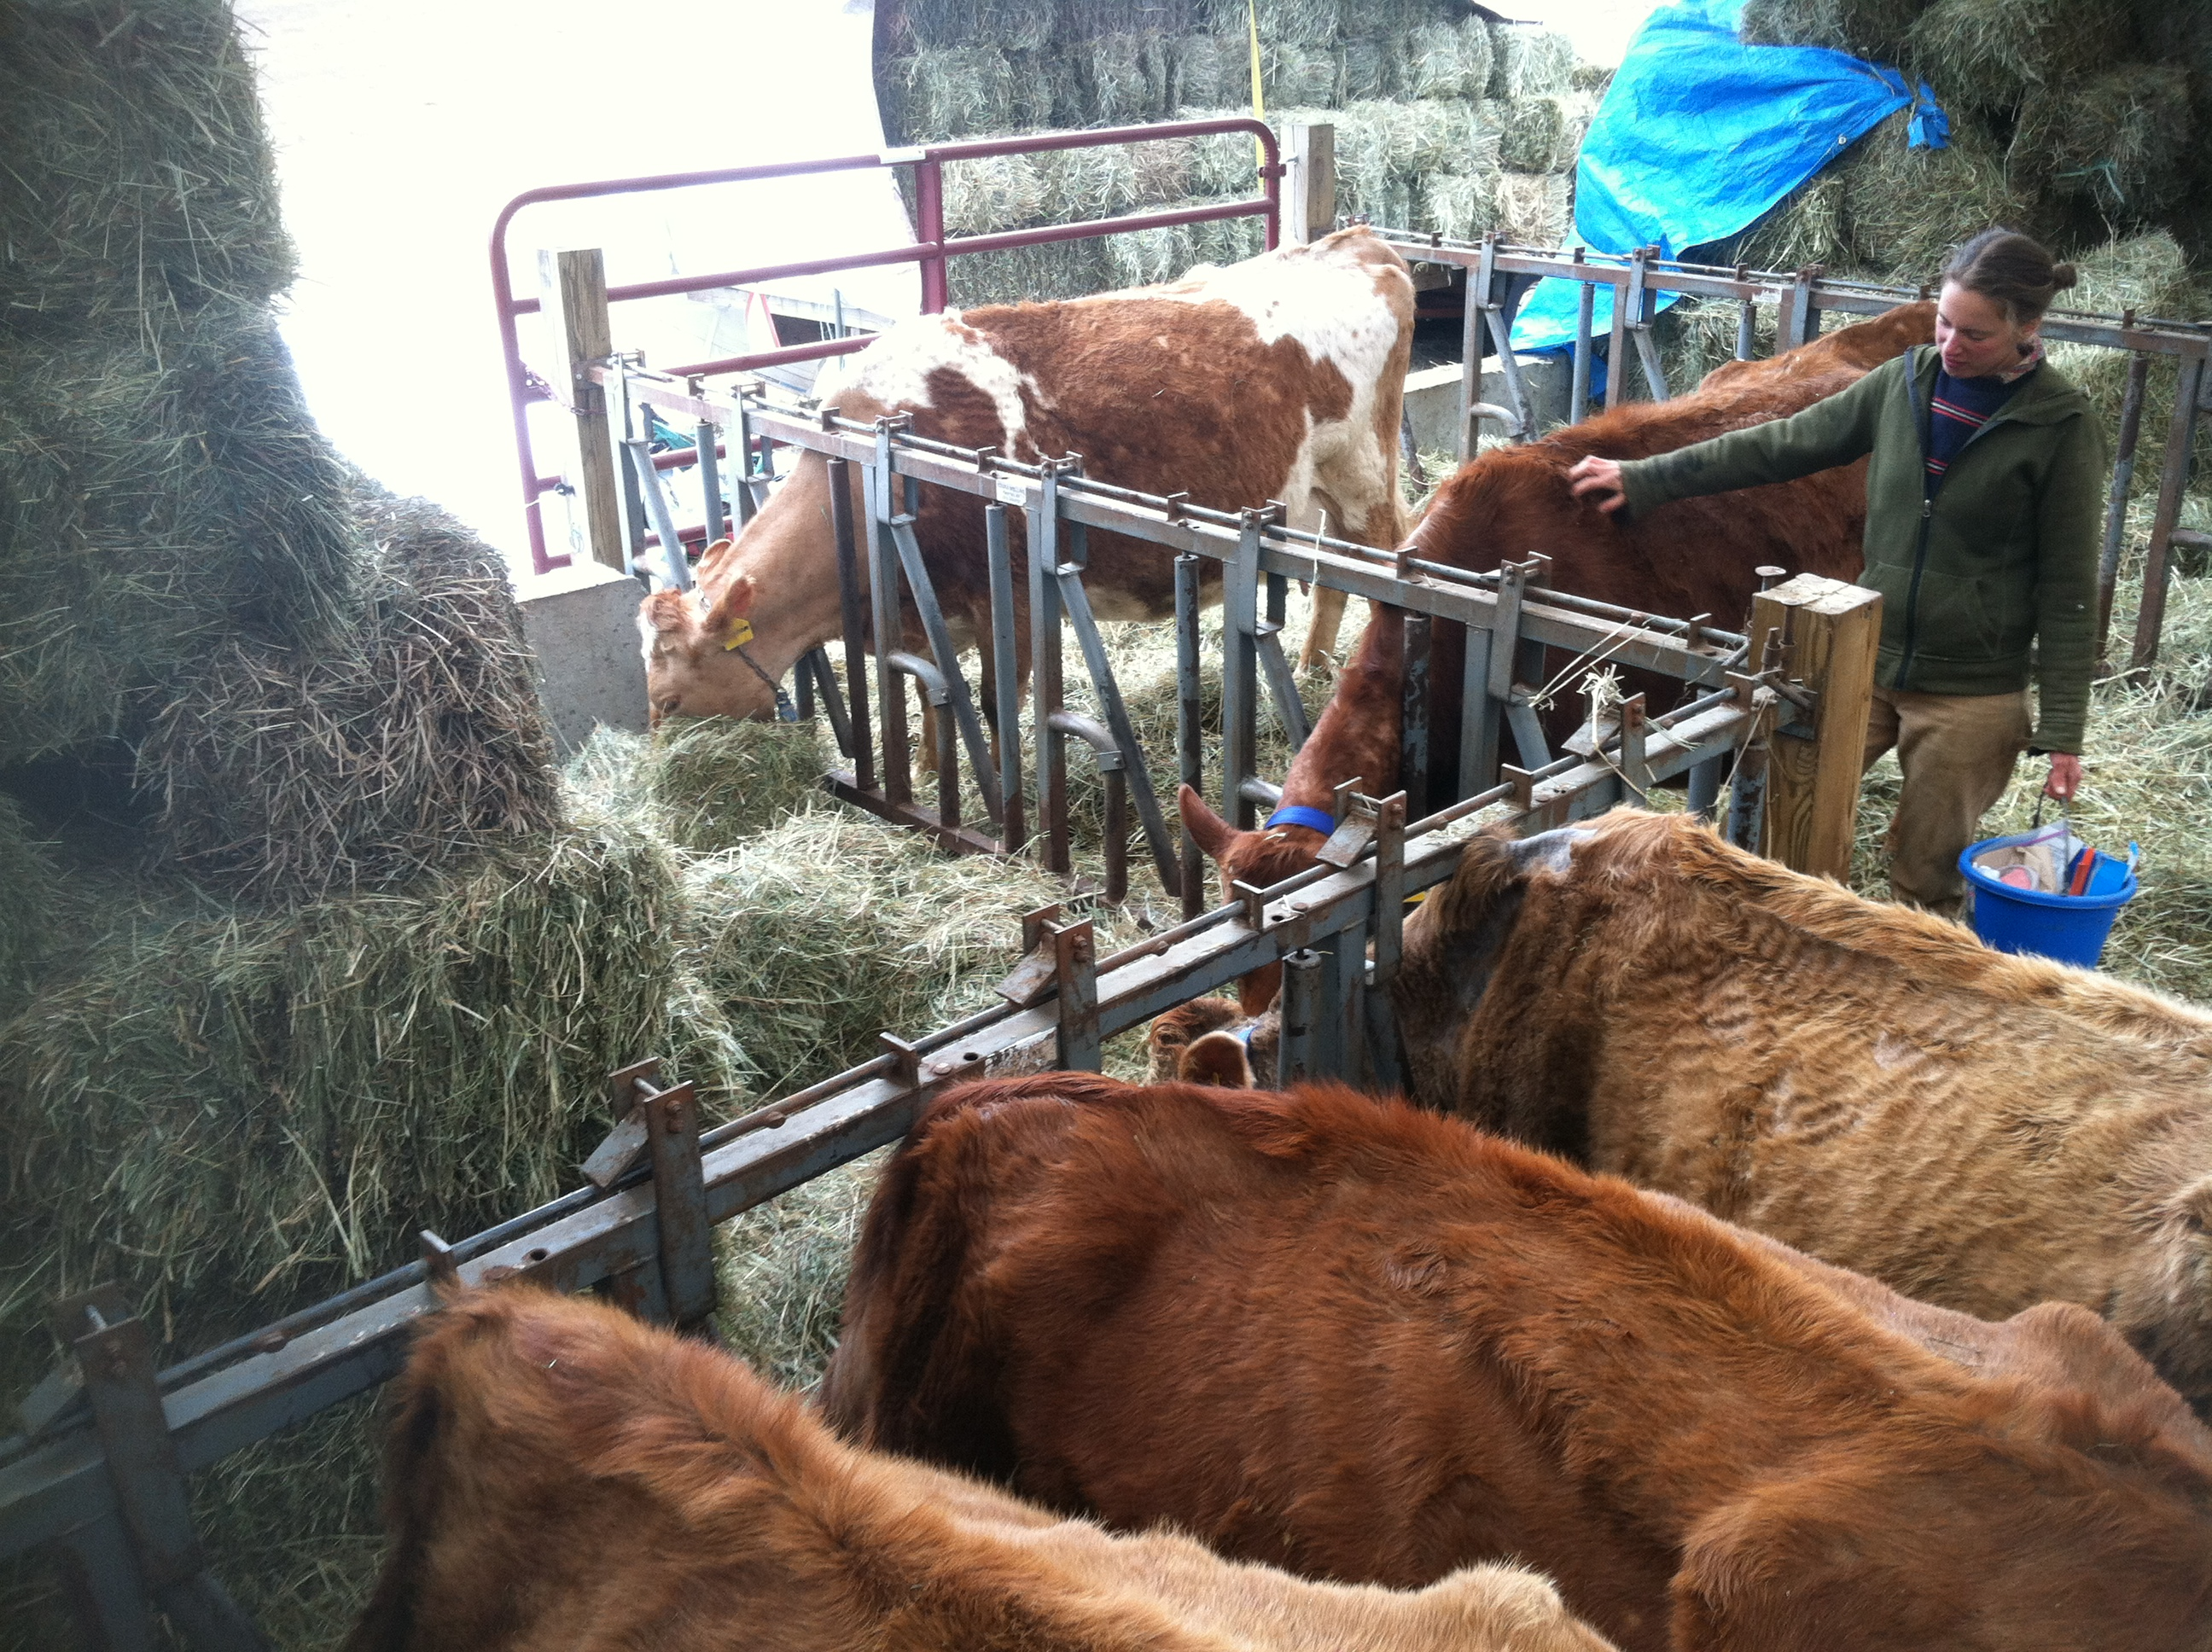 Cows in winter @ North Country Creamery